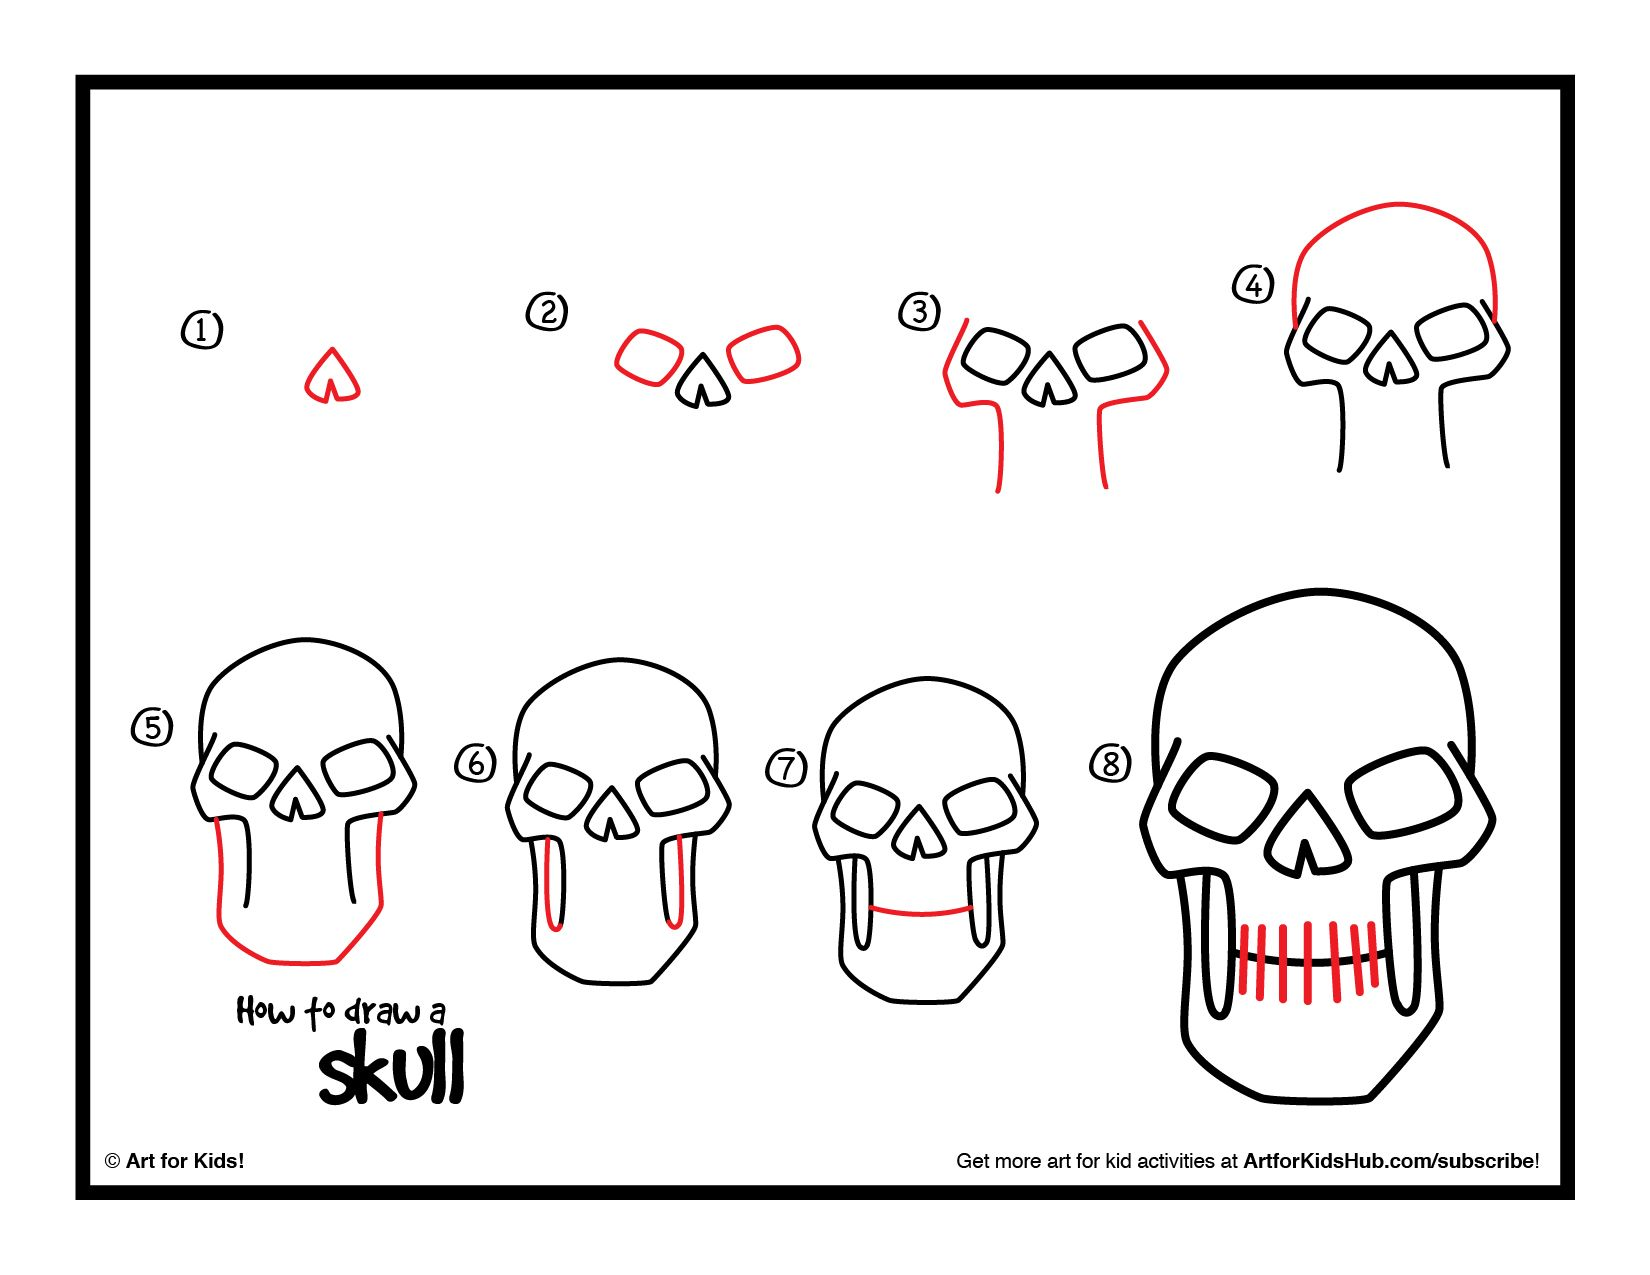 How To Draw A Skull  Art For Kids Hub